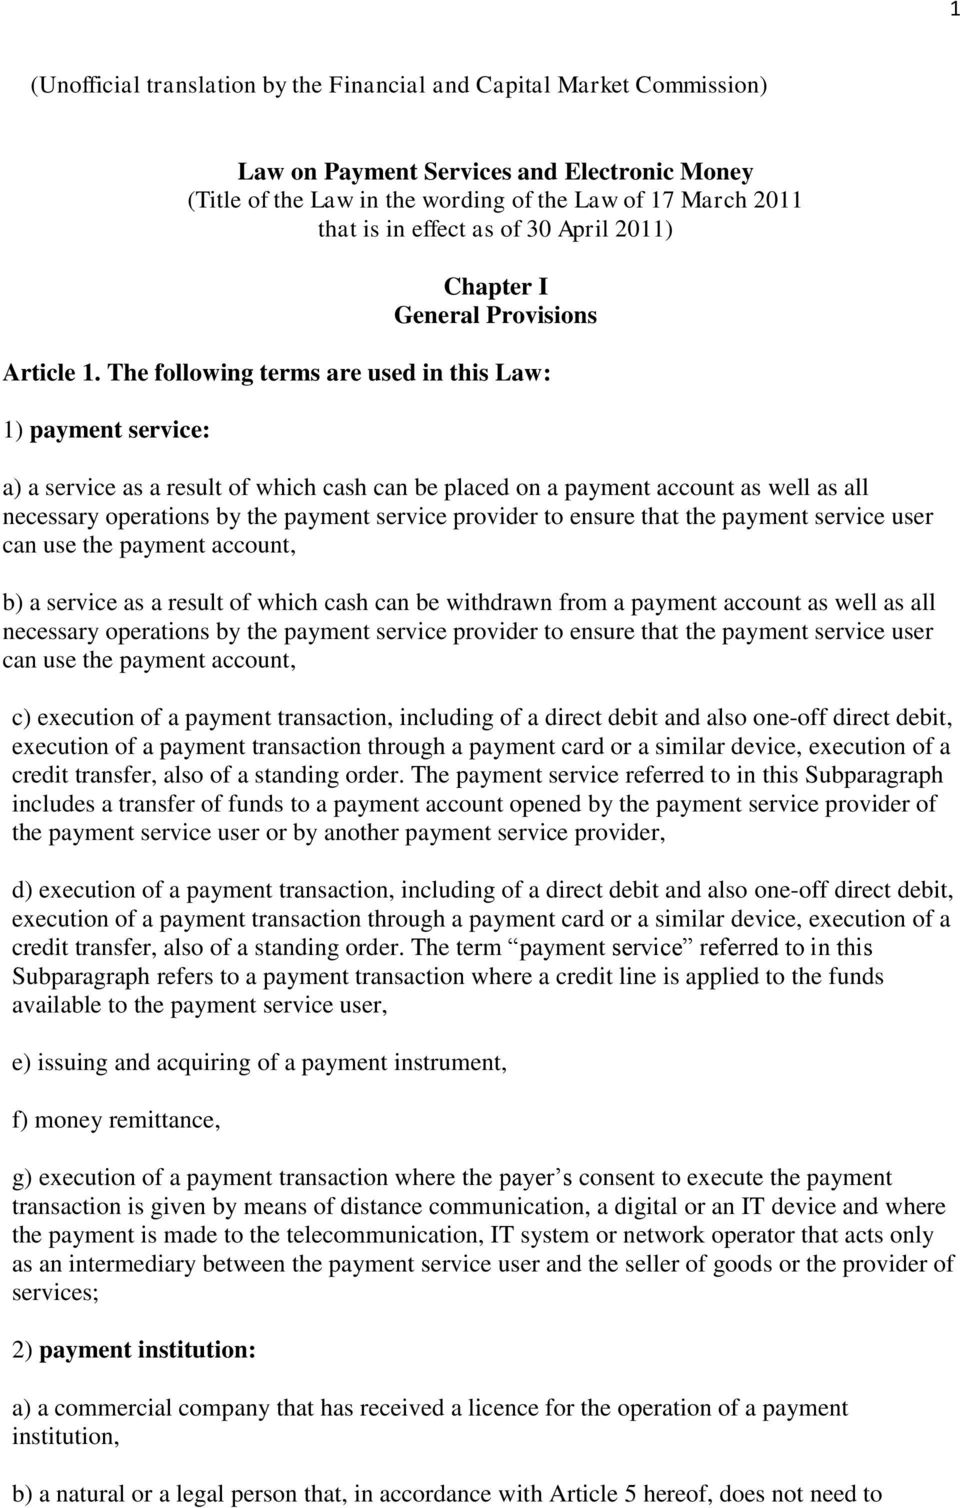 The following terms are used in this Law: 1) payment service: a) a service as a result of which cash can be placed on a payment account as well as all necessary operations by the payment service